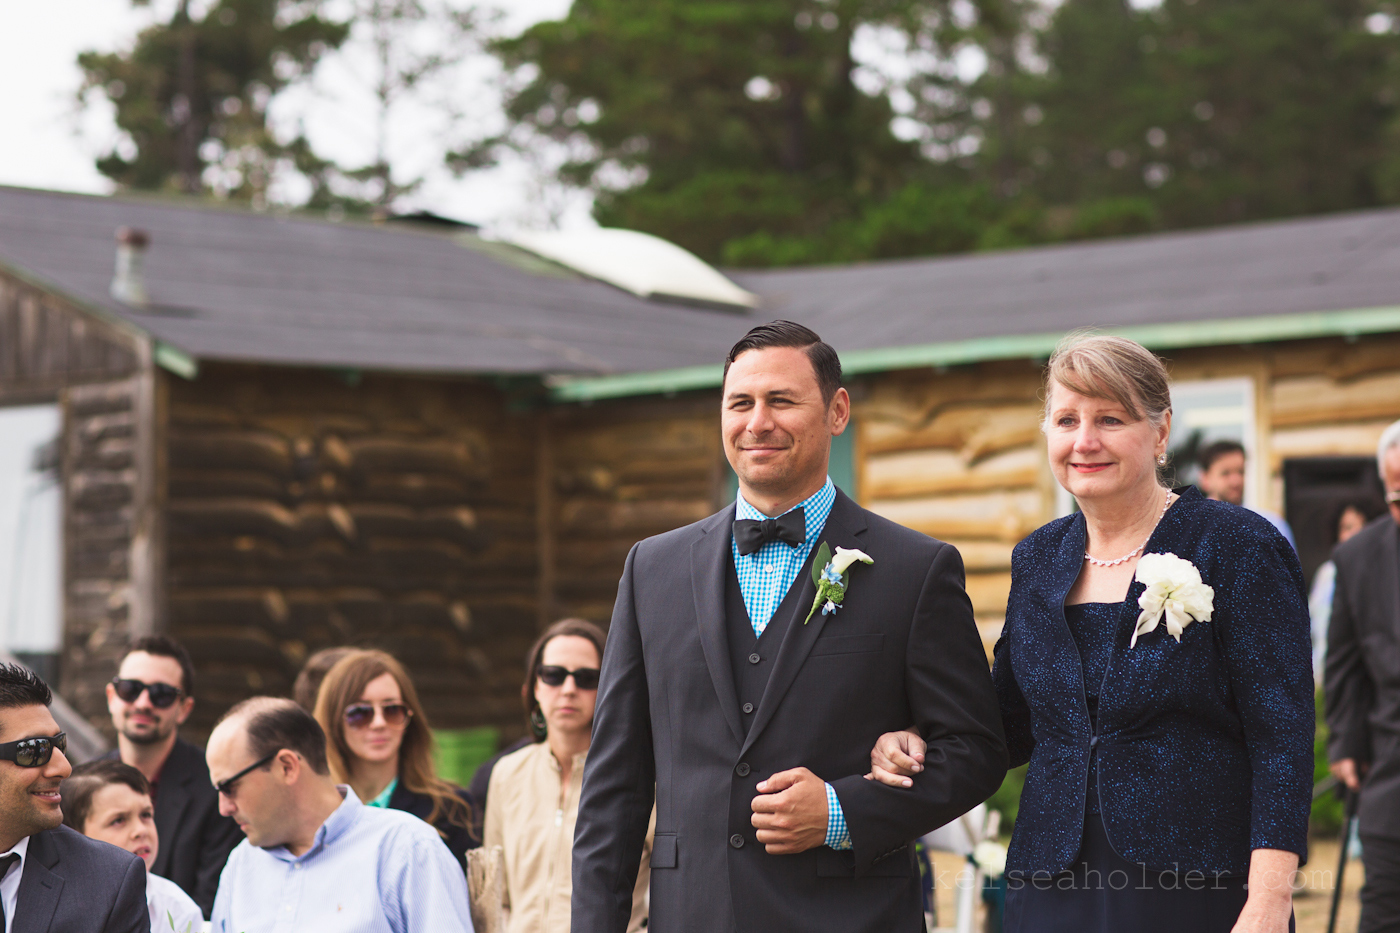 kelsea_holder_eco_outdoor_california_wedding025